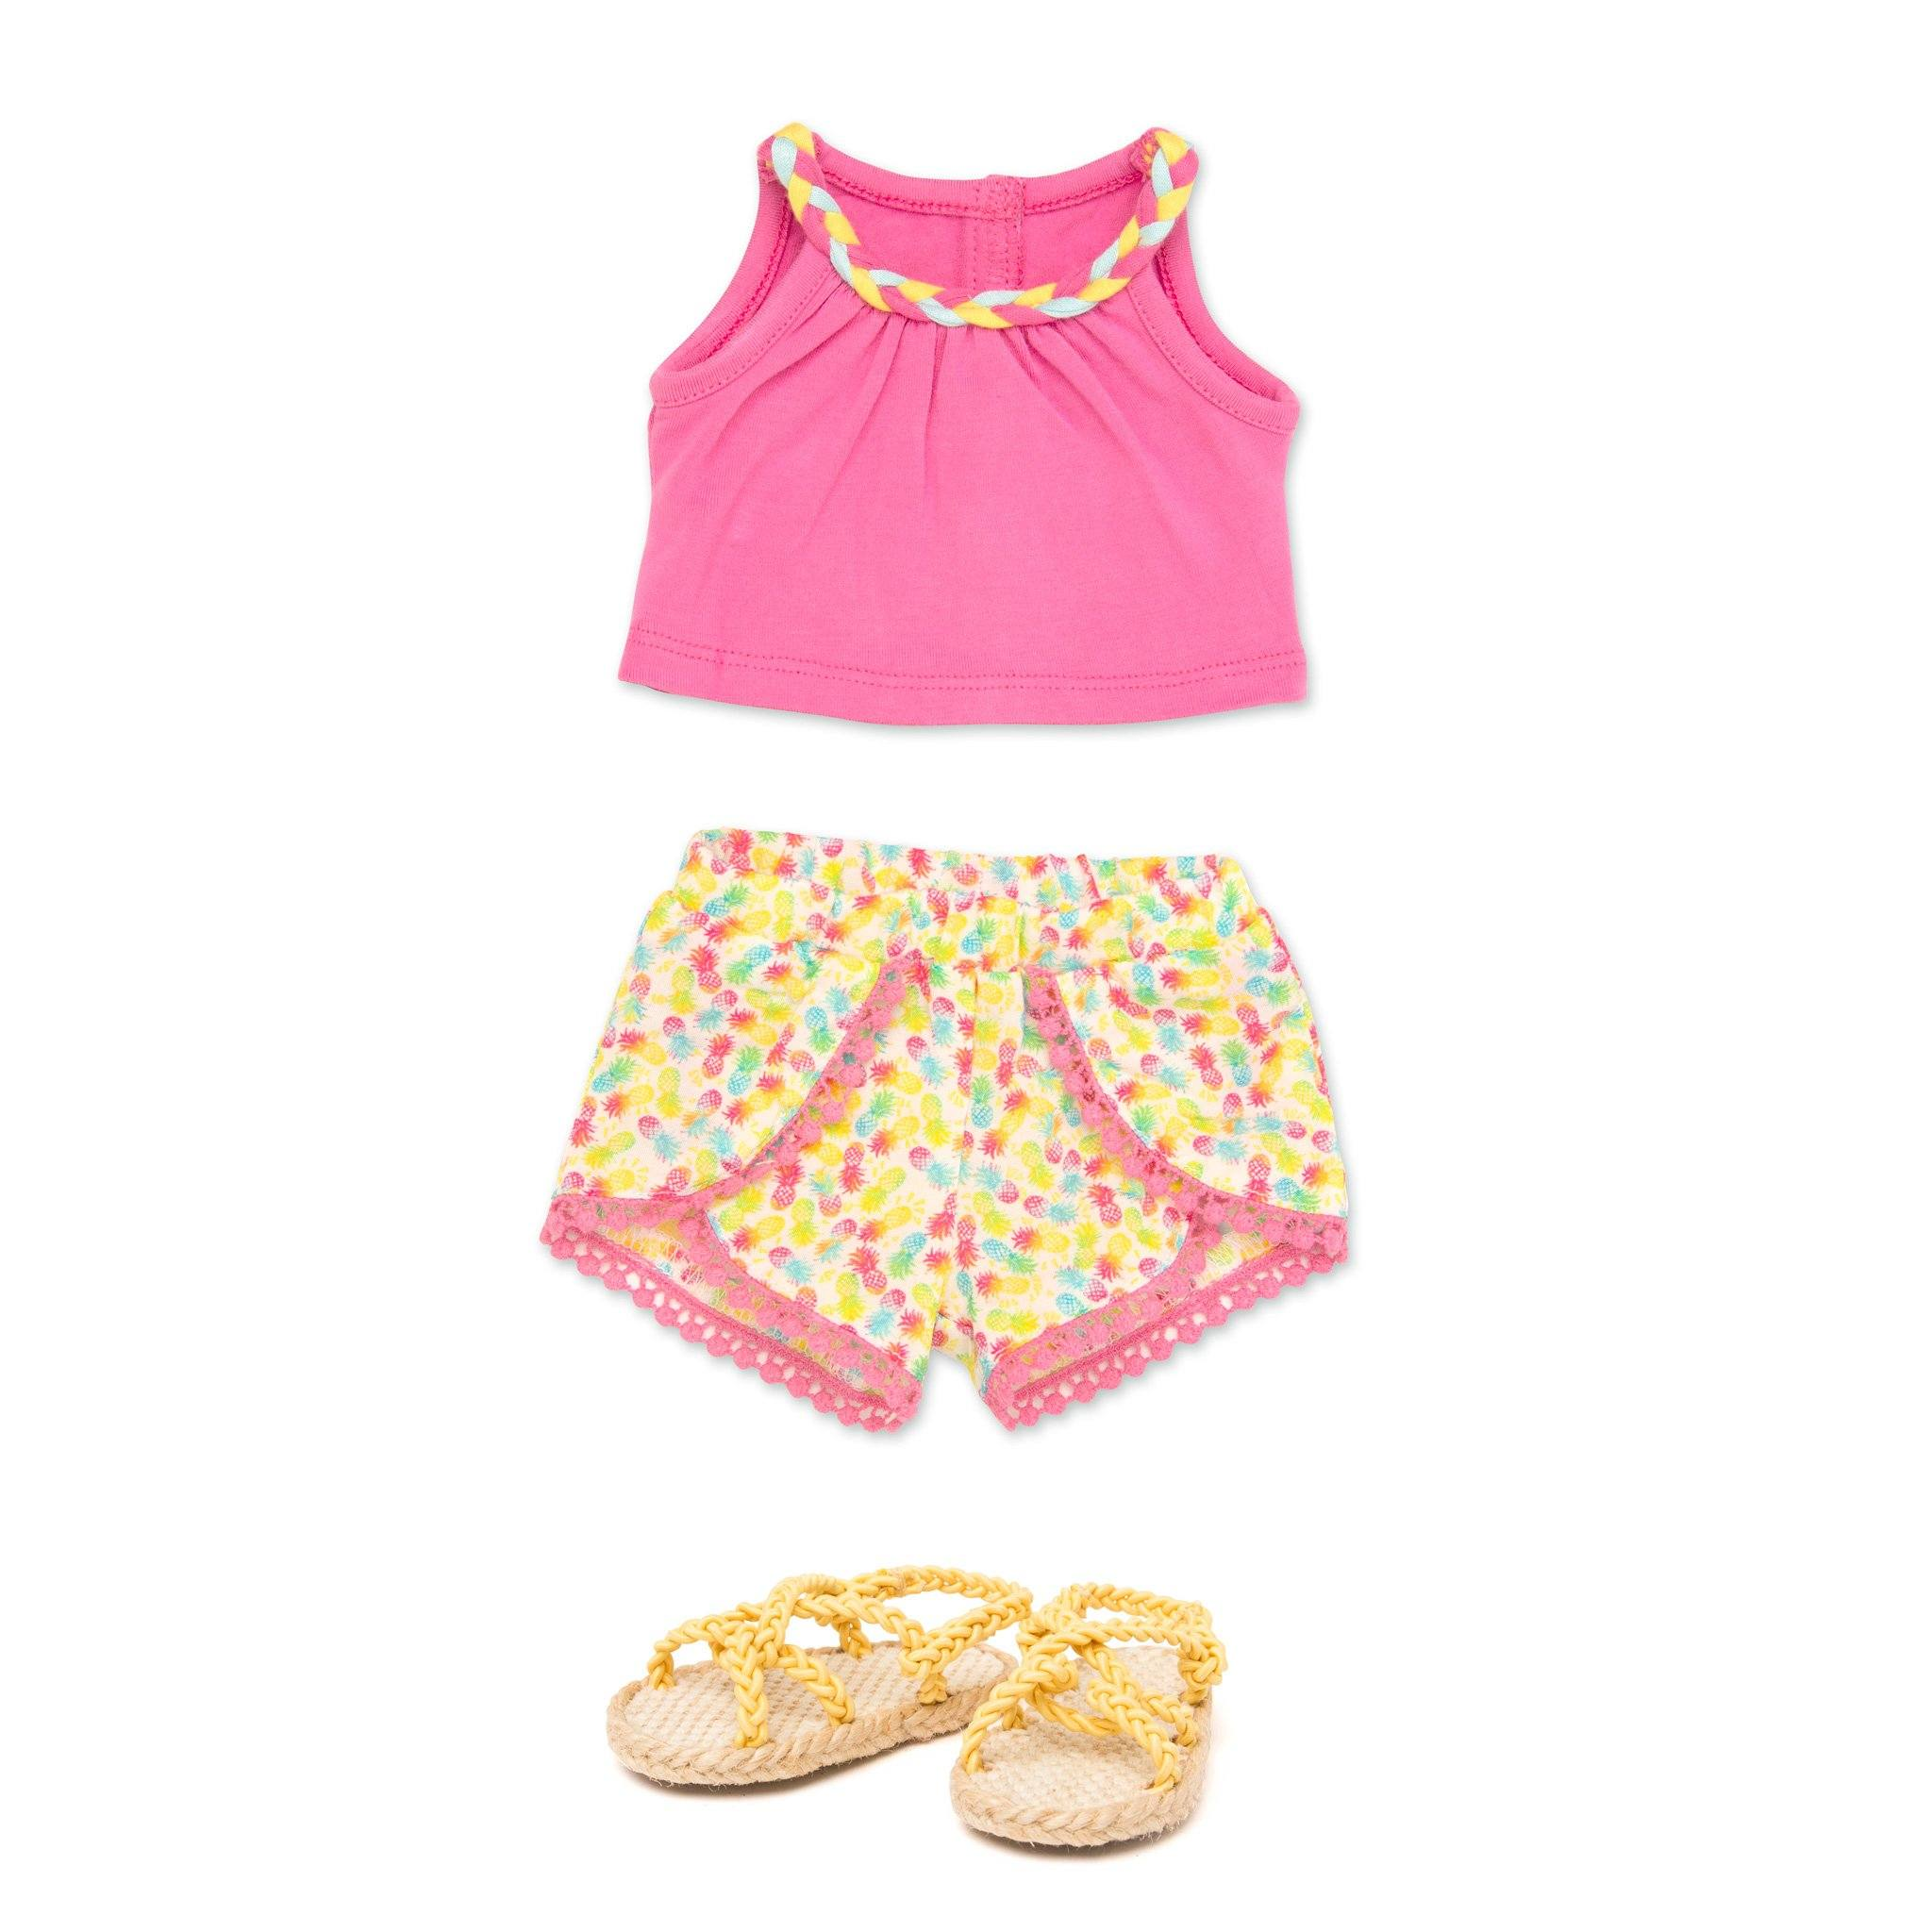 Holiday Hooray summer outfit pink tank top with braided neckline detail, tulip-style patterned shorts and yellow rope sandals fits all 18 inch dolls.